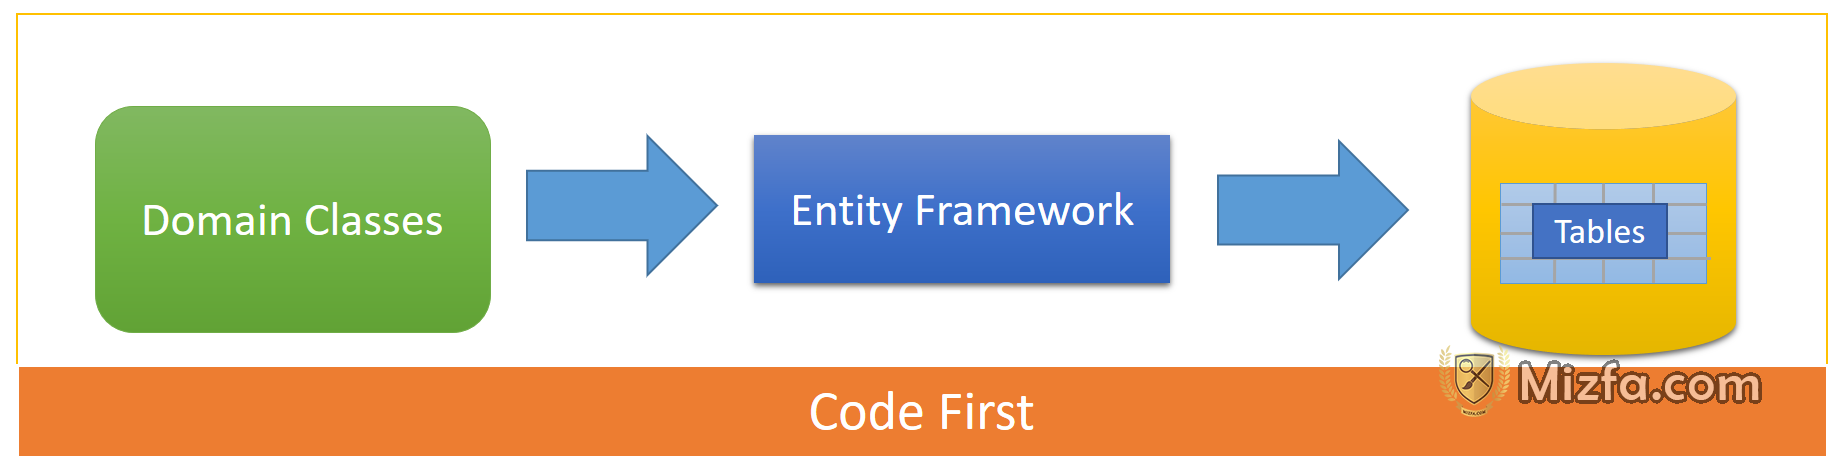 Code-First چیست ؟